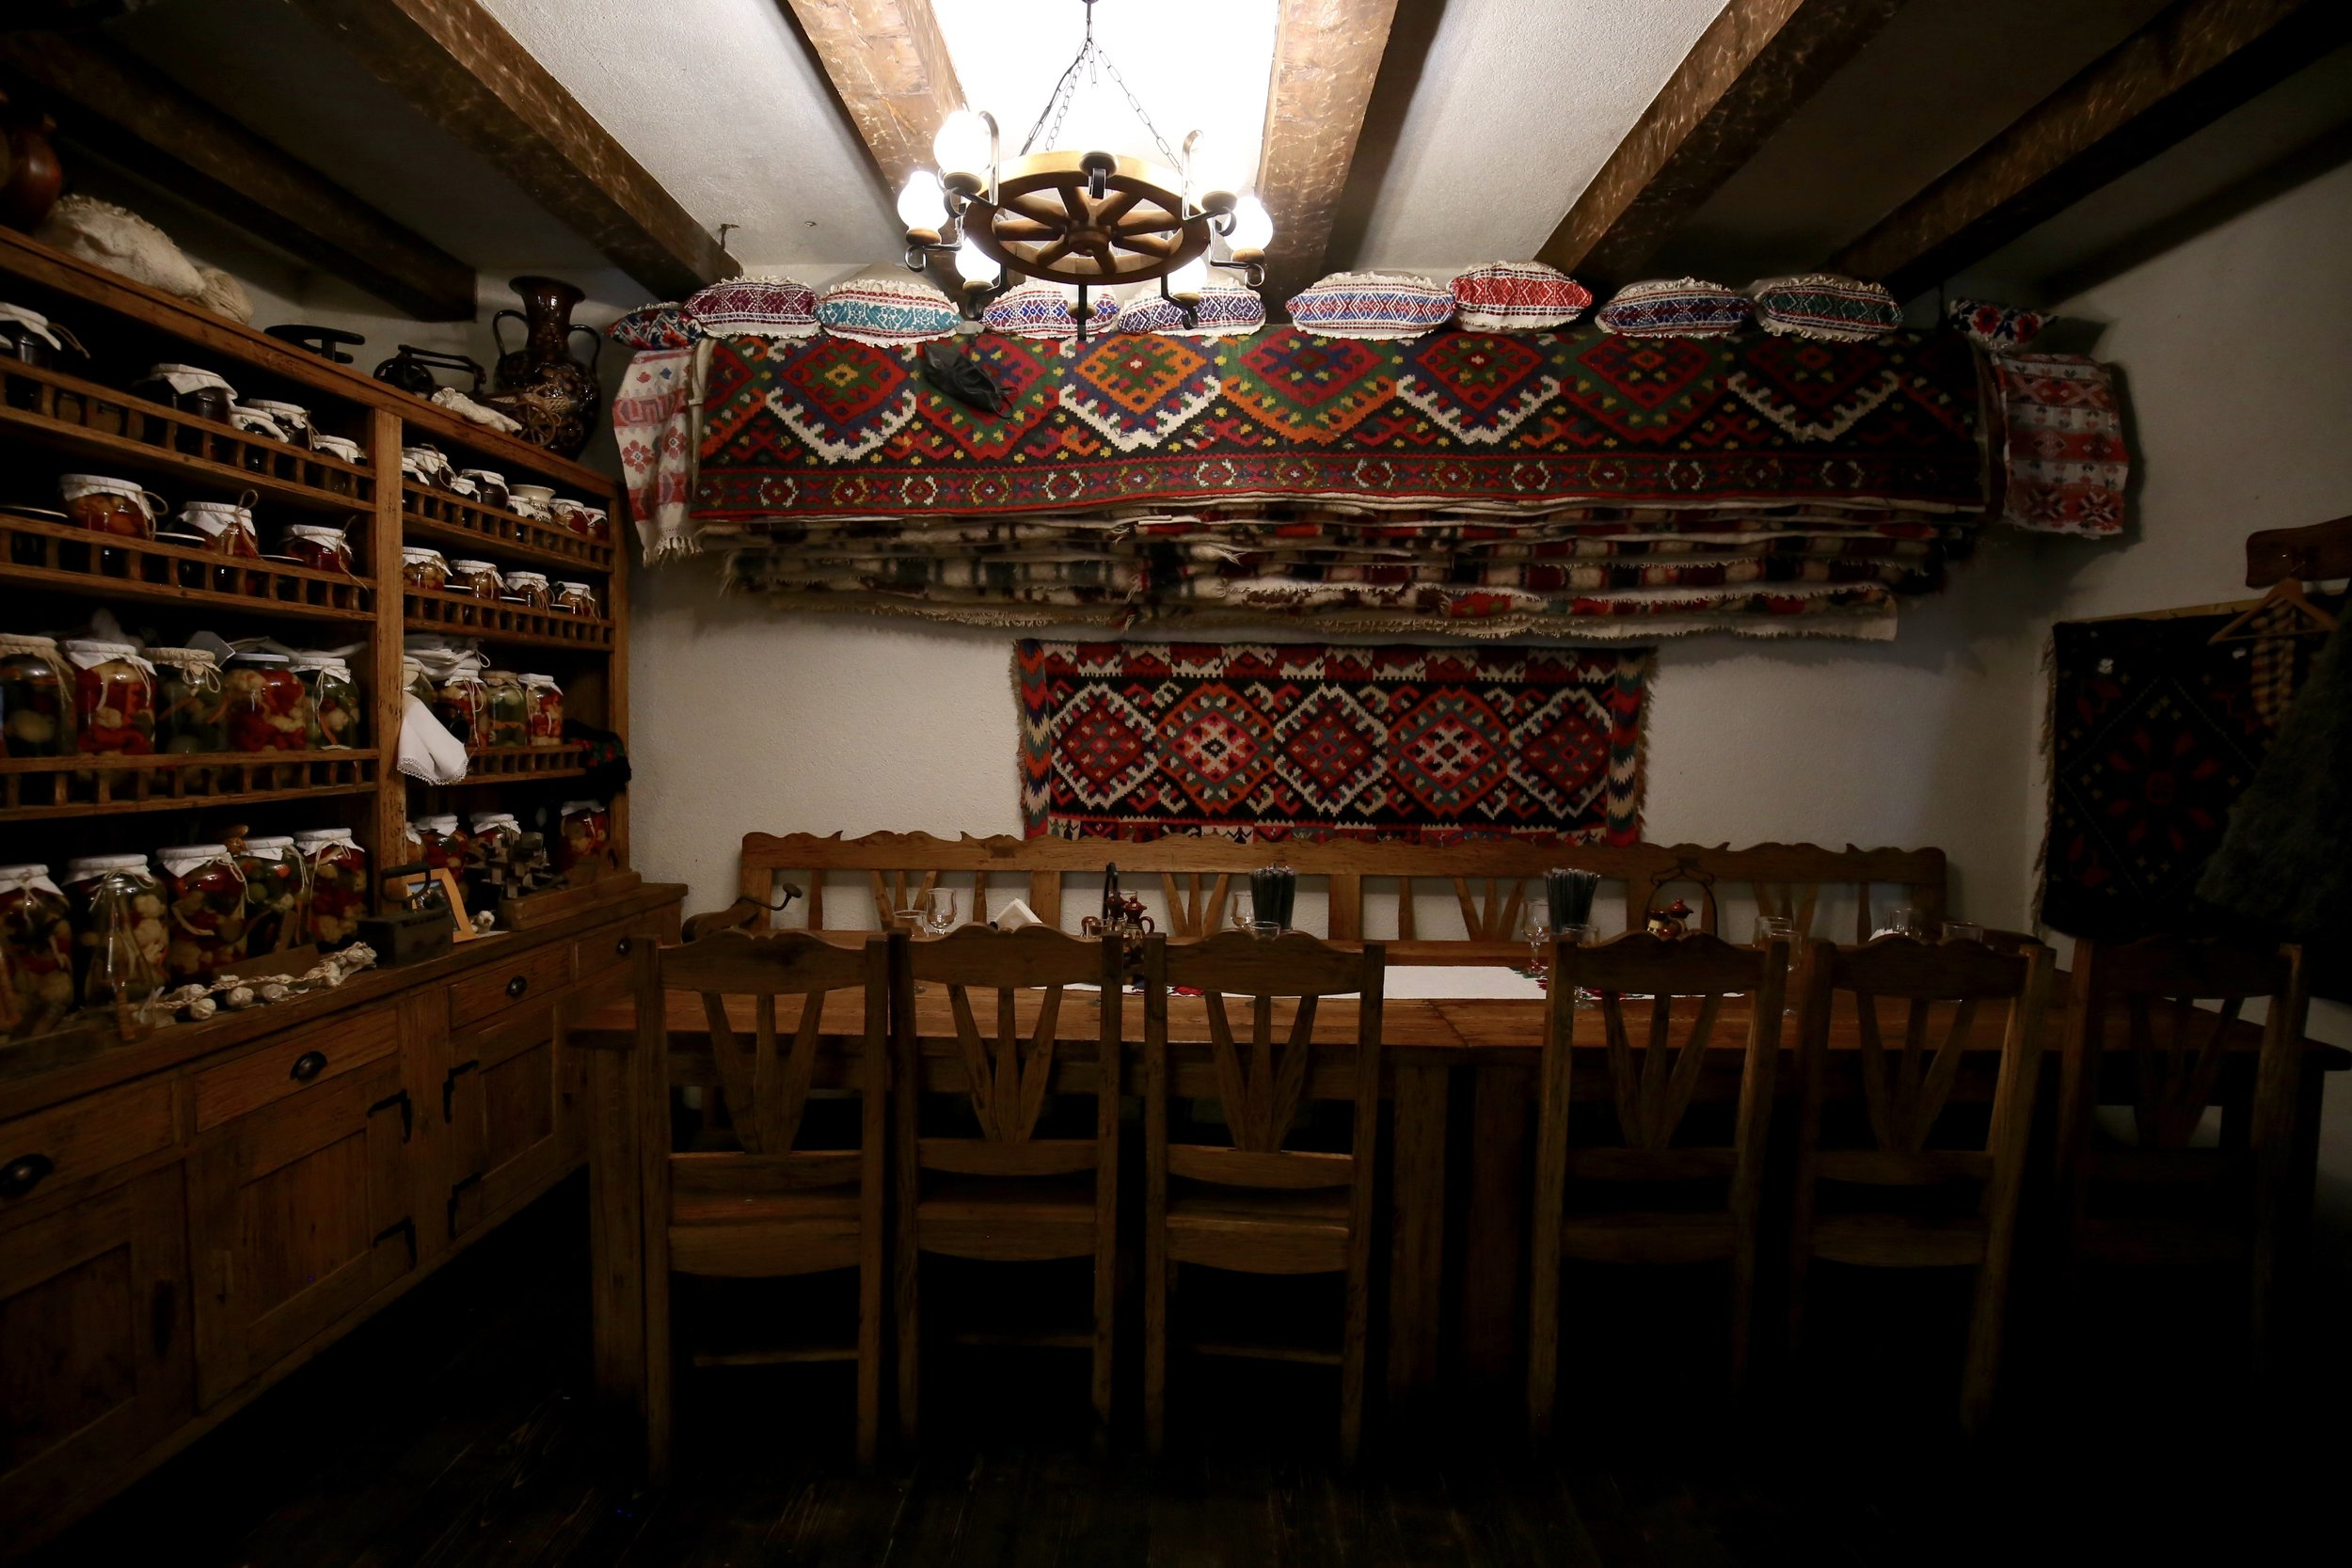 Pastravaria Alex - a small traditional Romanian restaurant with colourful carpets and low ceilings.